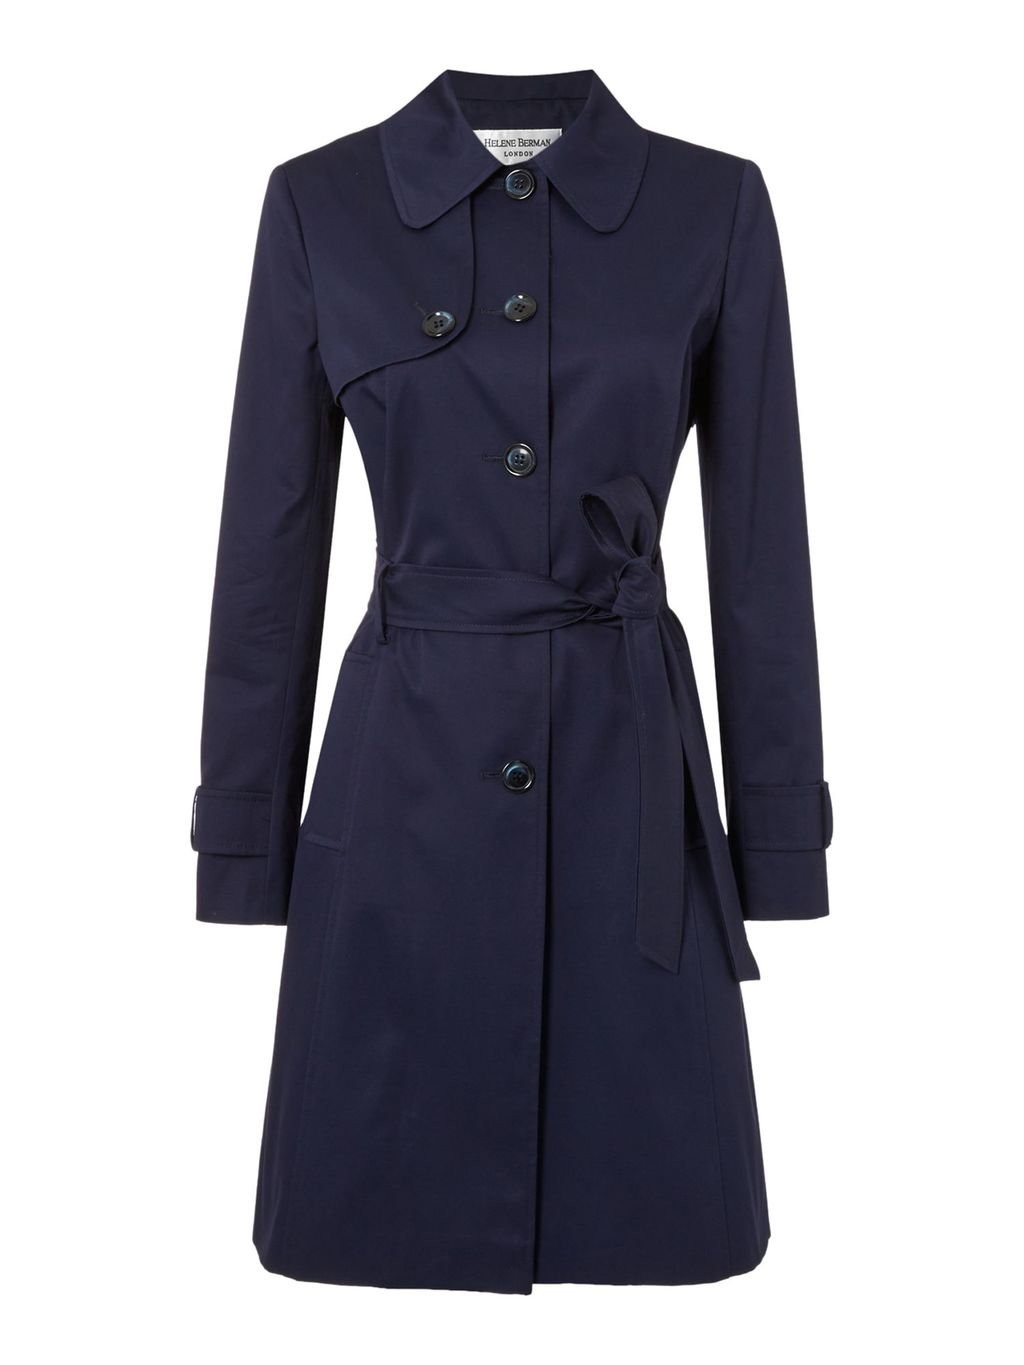 Single Breasted Trench Coat, Navy - pattern: plain; style: trench coat; length: mid thigh; predominant colour: navy; occasions: casual, creative work; fit: tailored/fitted; fibres: cotton - mix; collar: shirt collar/peter pan/zip with opening; waist detail: belted waist/tie at waist/drawstring; sleeve length: long sleeve; sleeve style: standard; texture group: cotton feel fabrics; collar break: high/illusion of break when open; pattern type: fabric; season: s/s 2016; wardrobe: basic